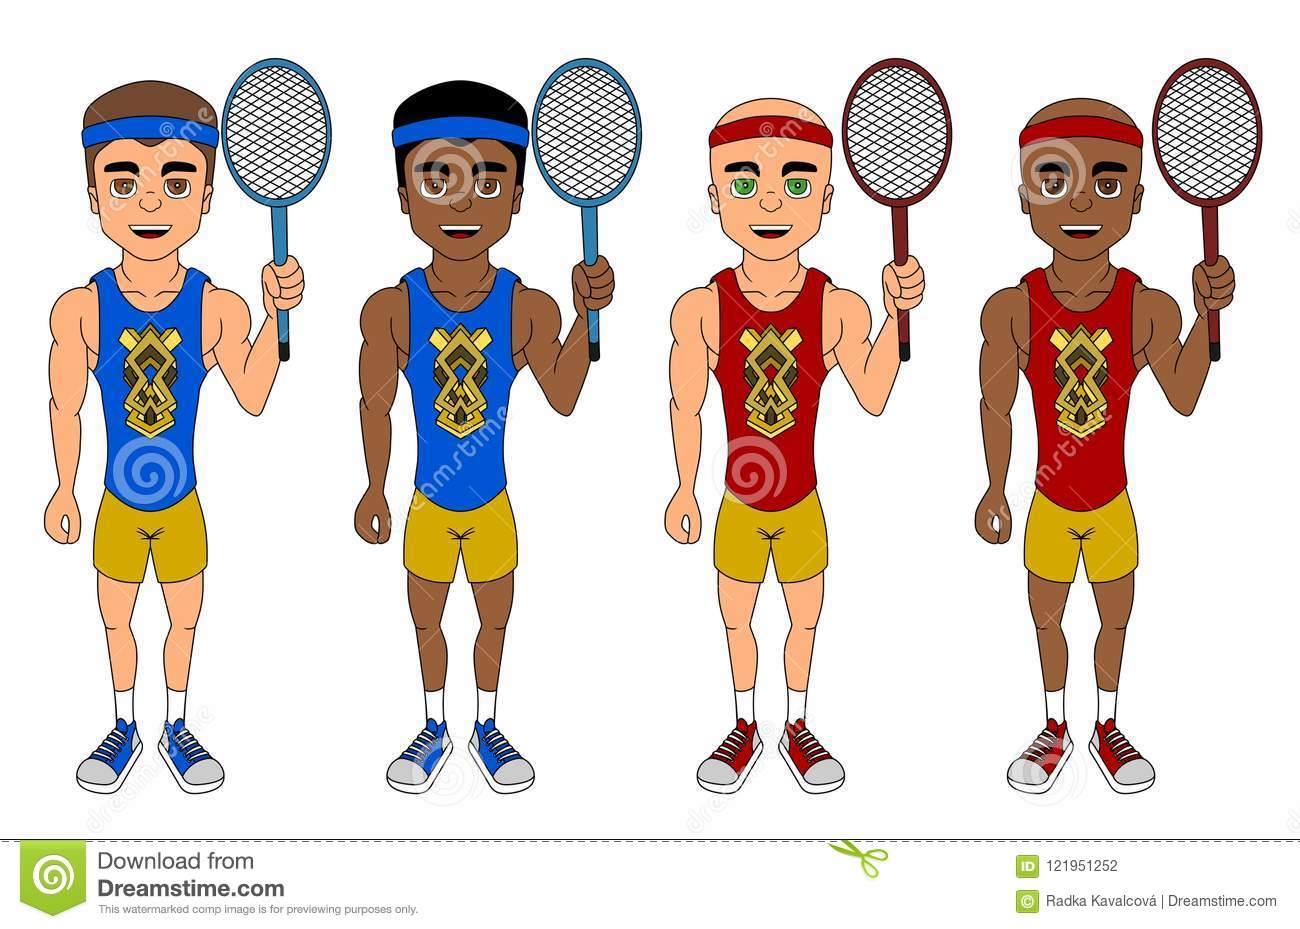 Collection of diverse tennis players cartoon